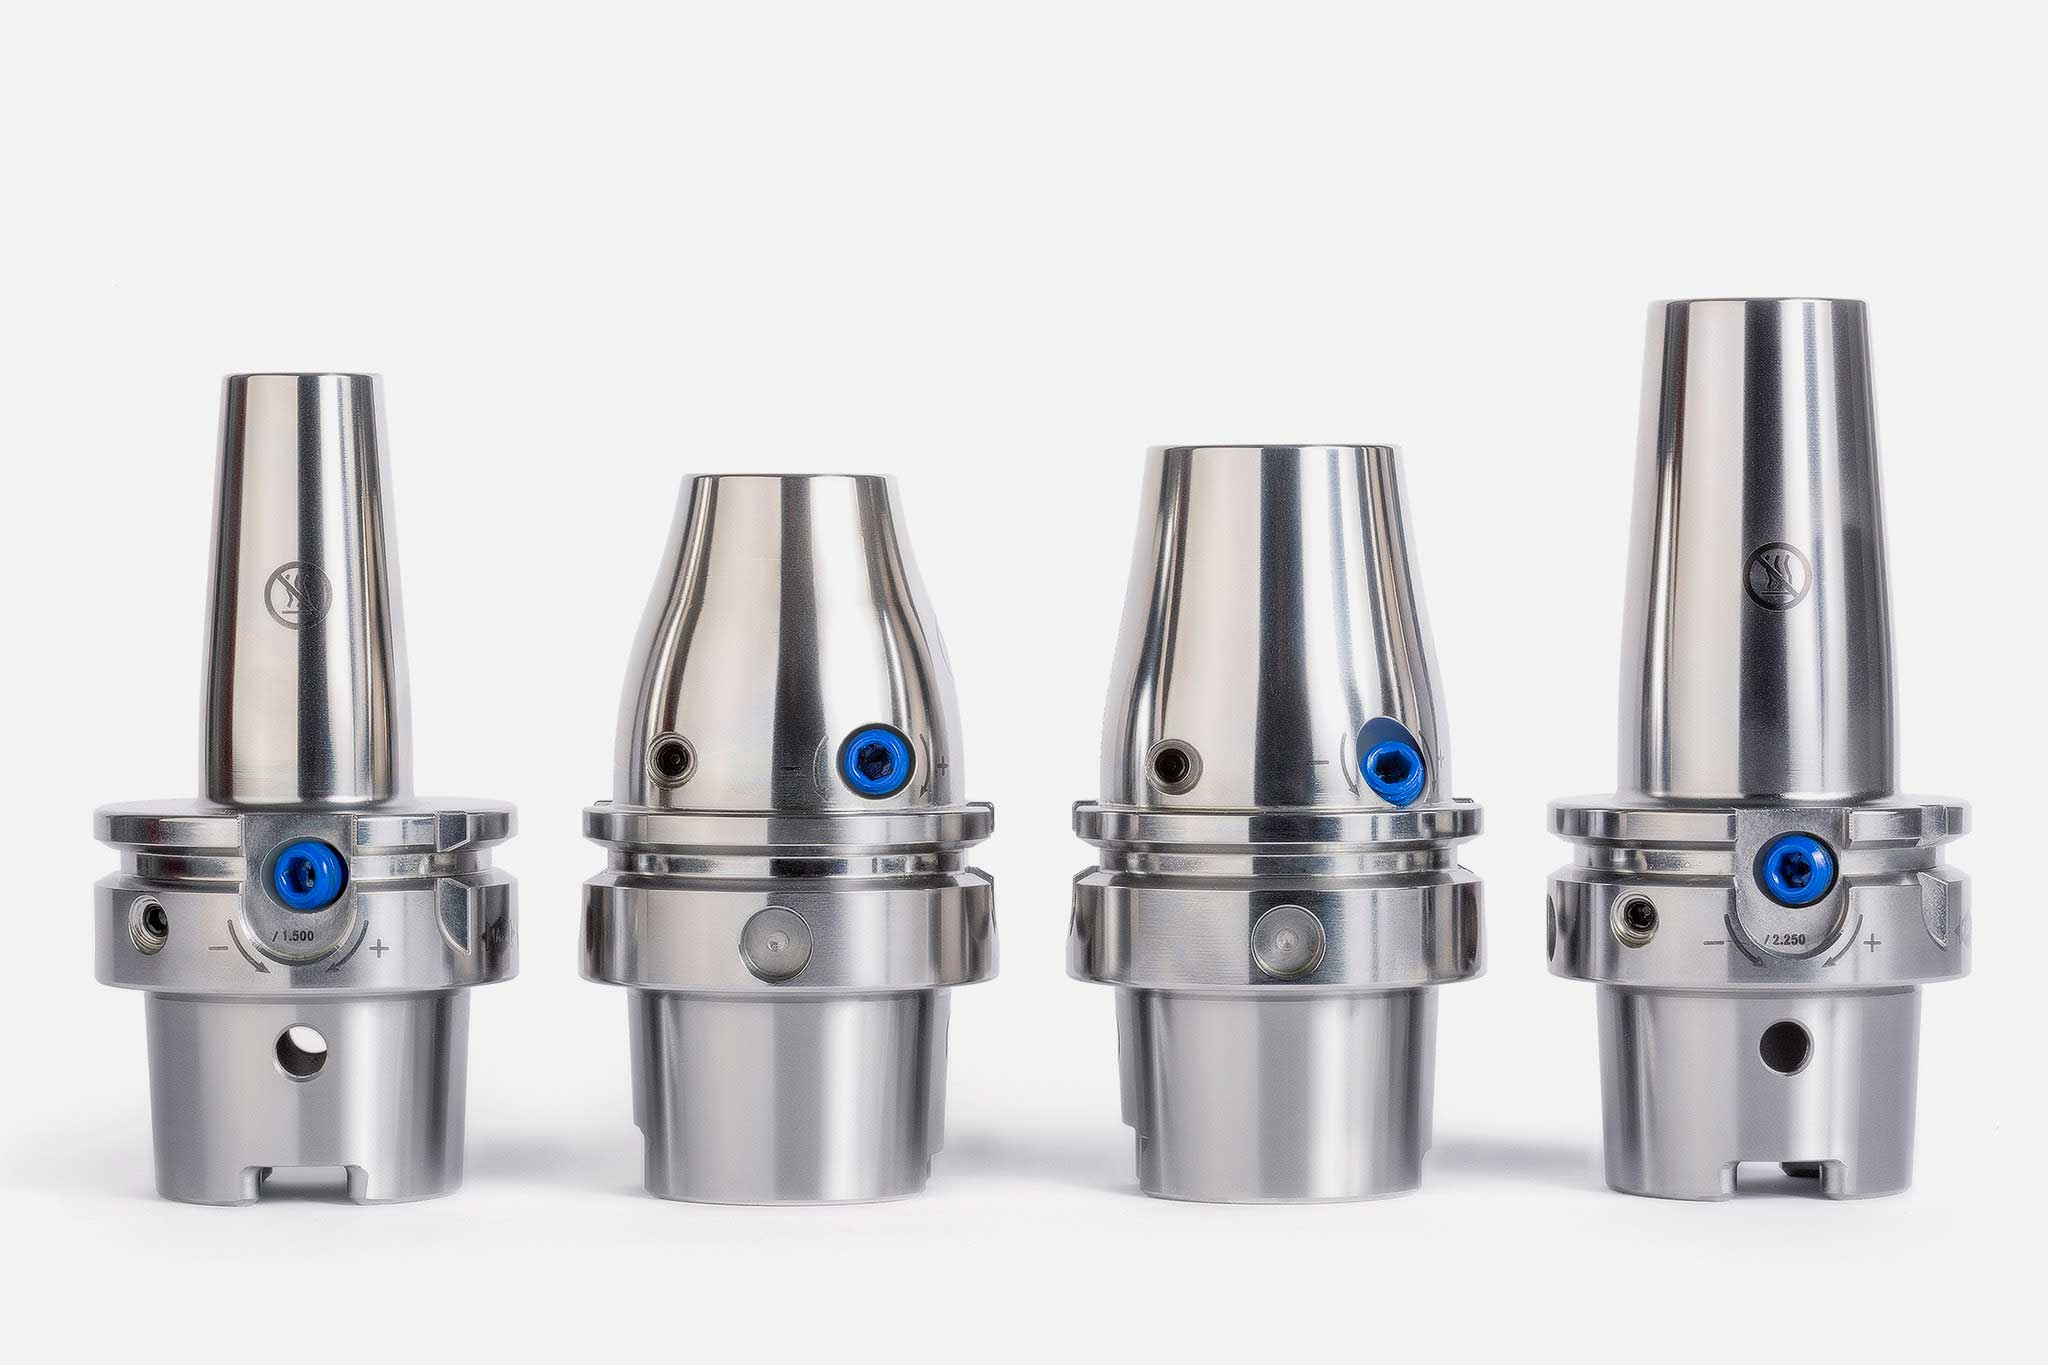 New hydraulic expansion clamping devices from MAPAL in an awarded design.